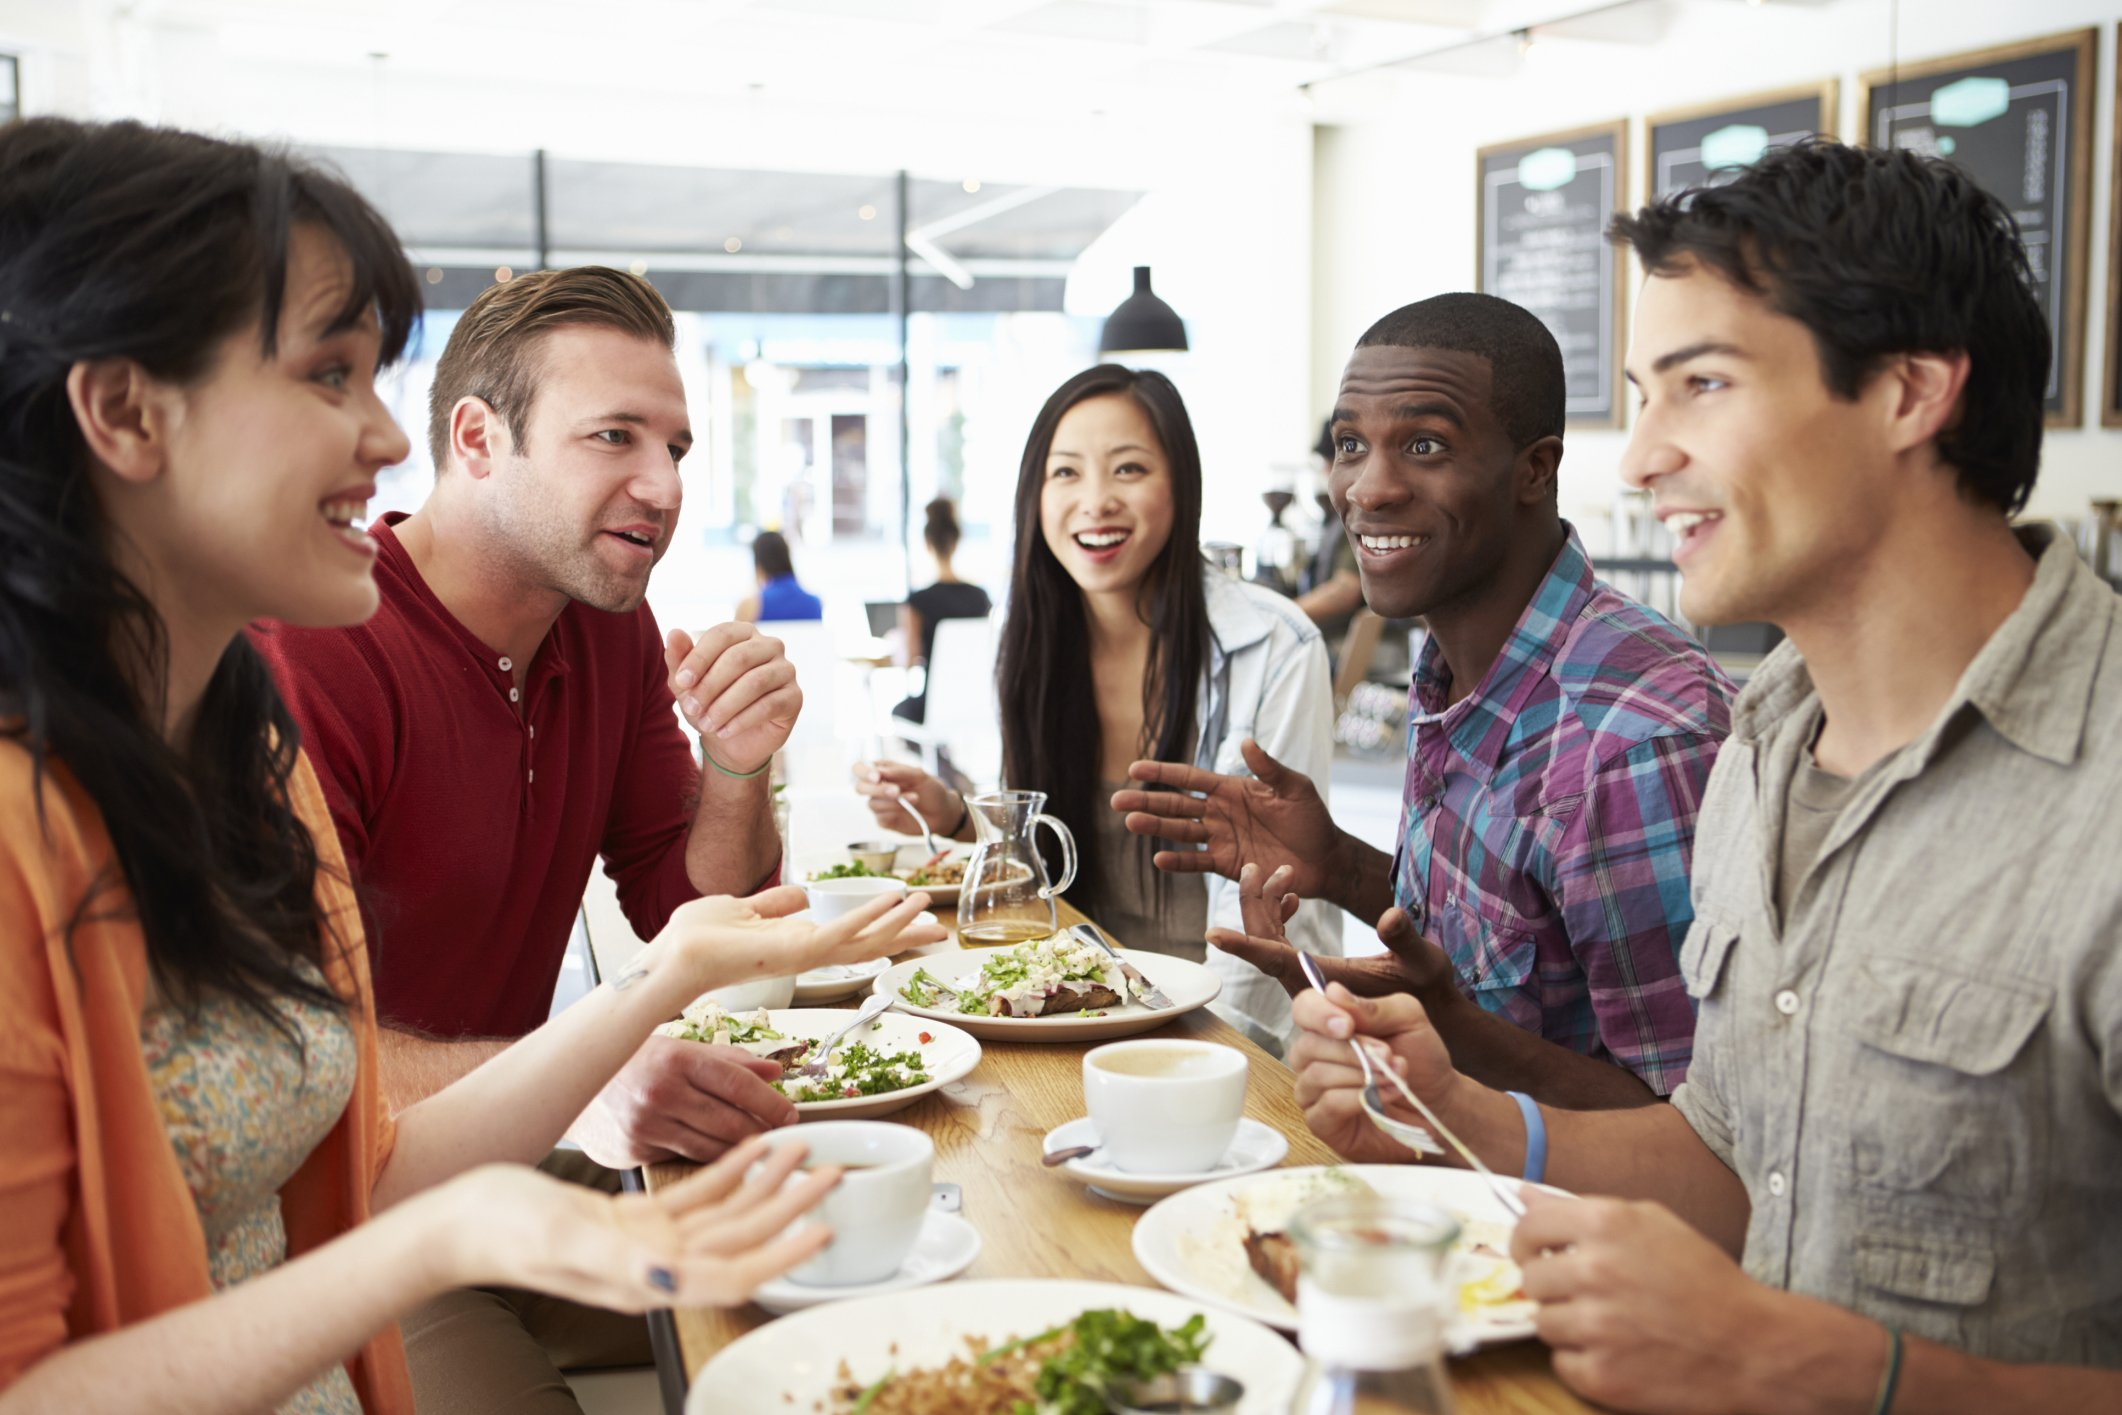 Salad or Cheeseburger? Your Co-Workers Shape Your Food Choices